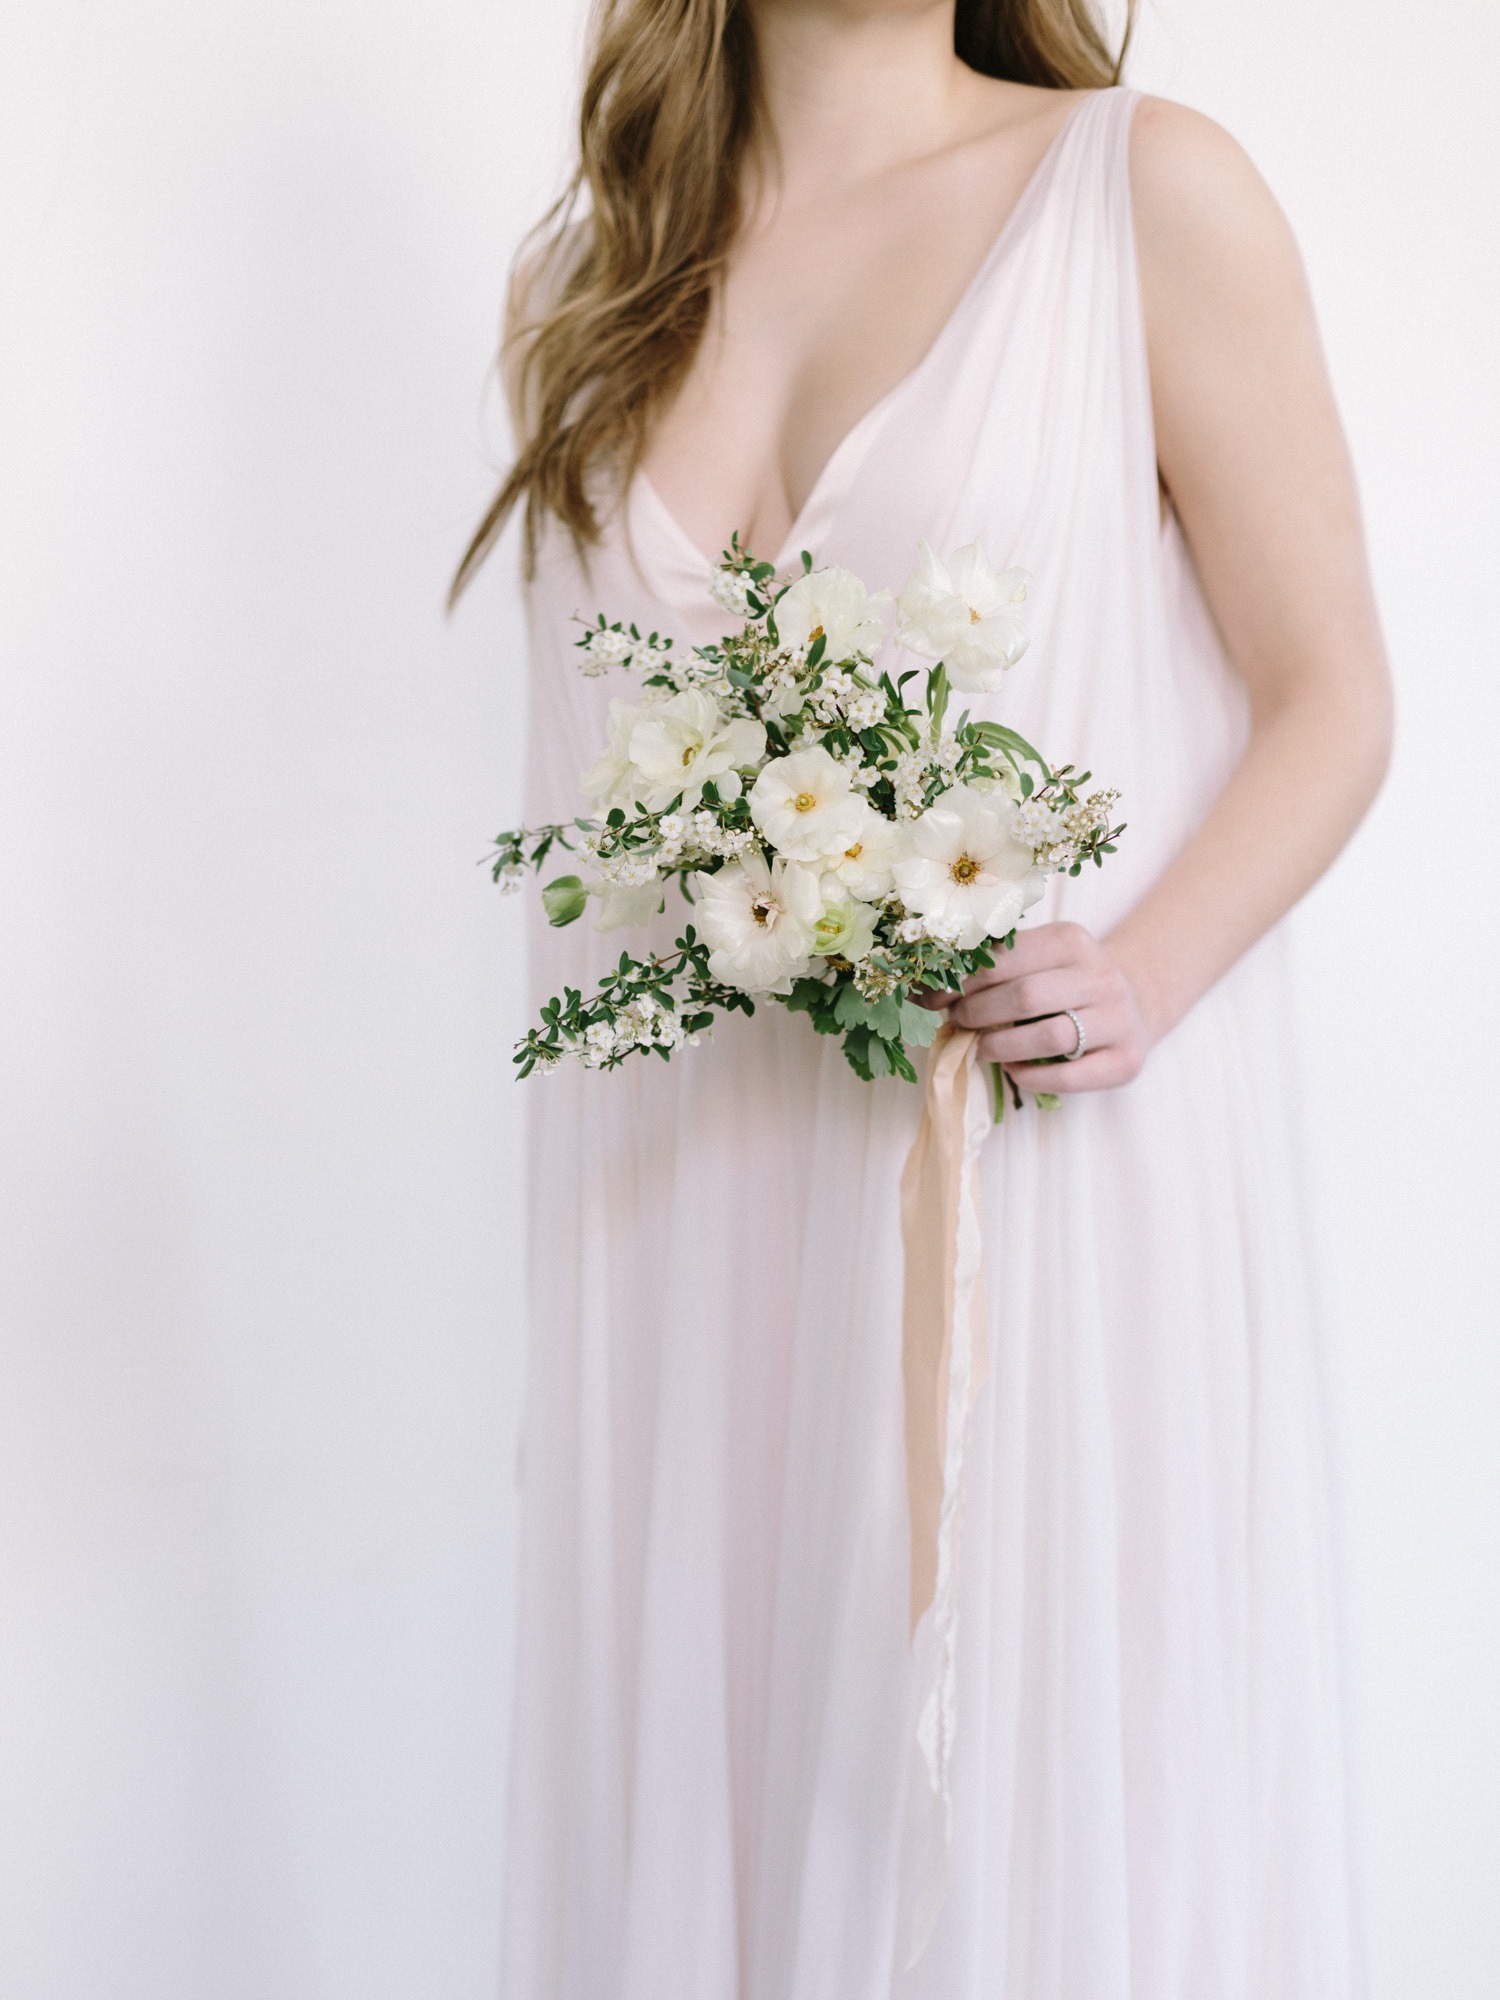 A bride in a blush silk wedding dress holds a small bouquet of spring flowers